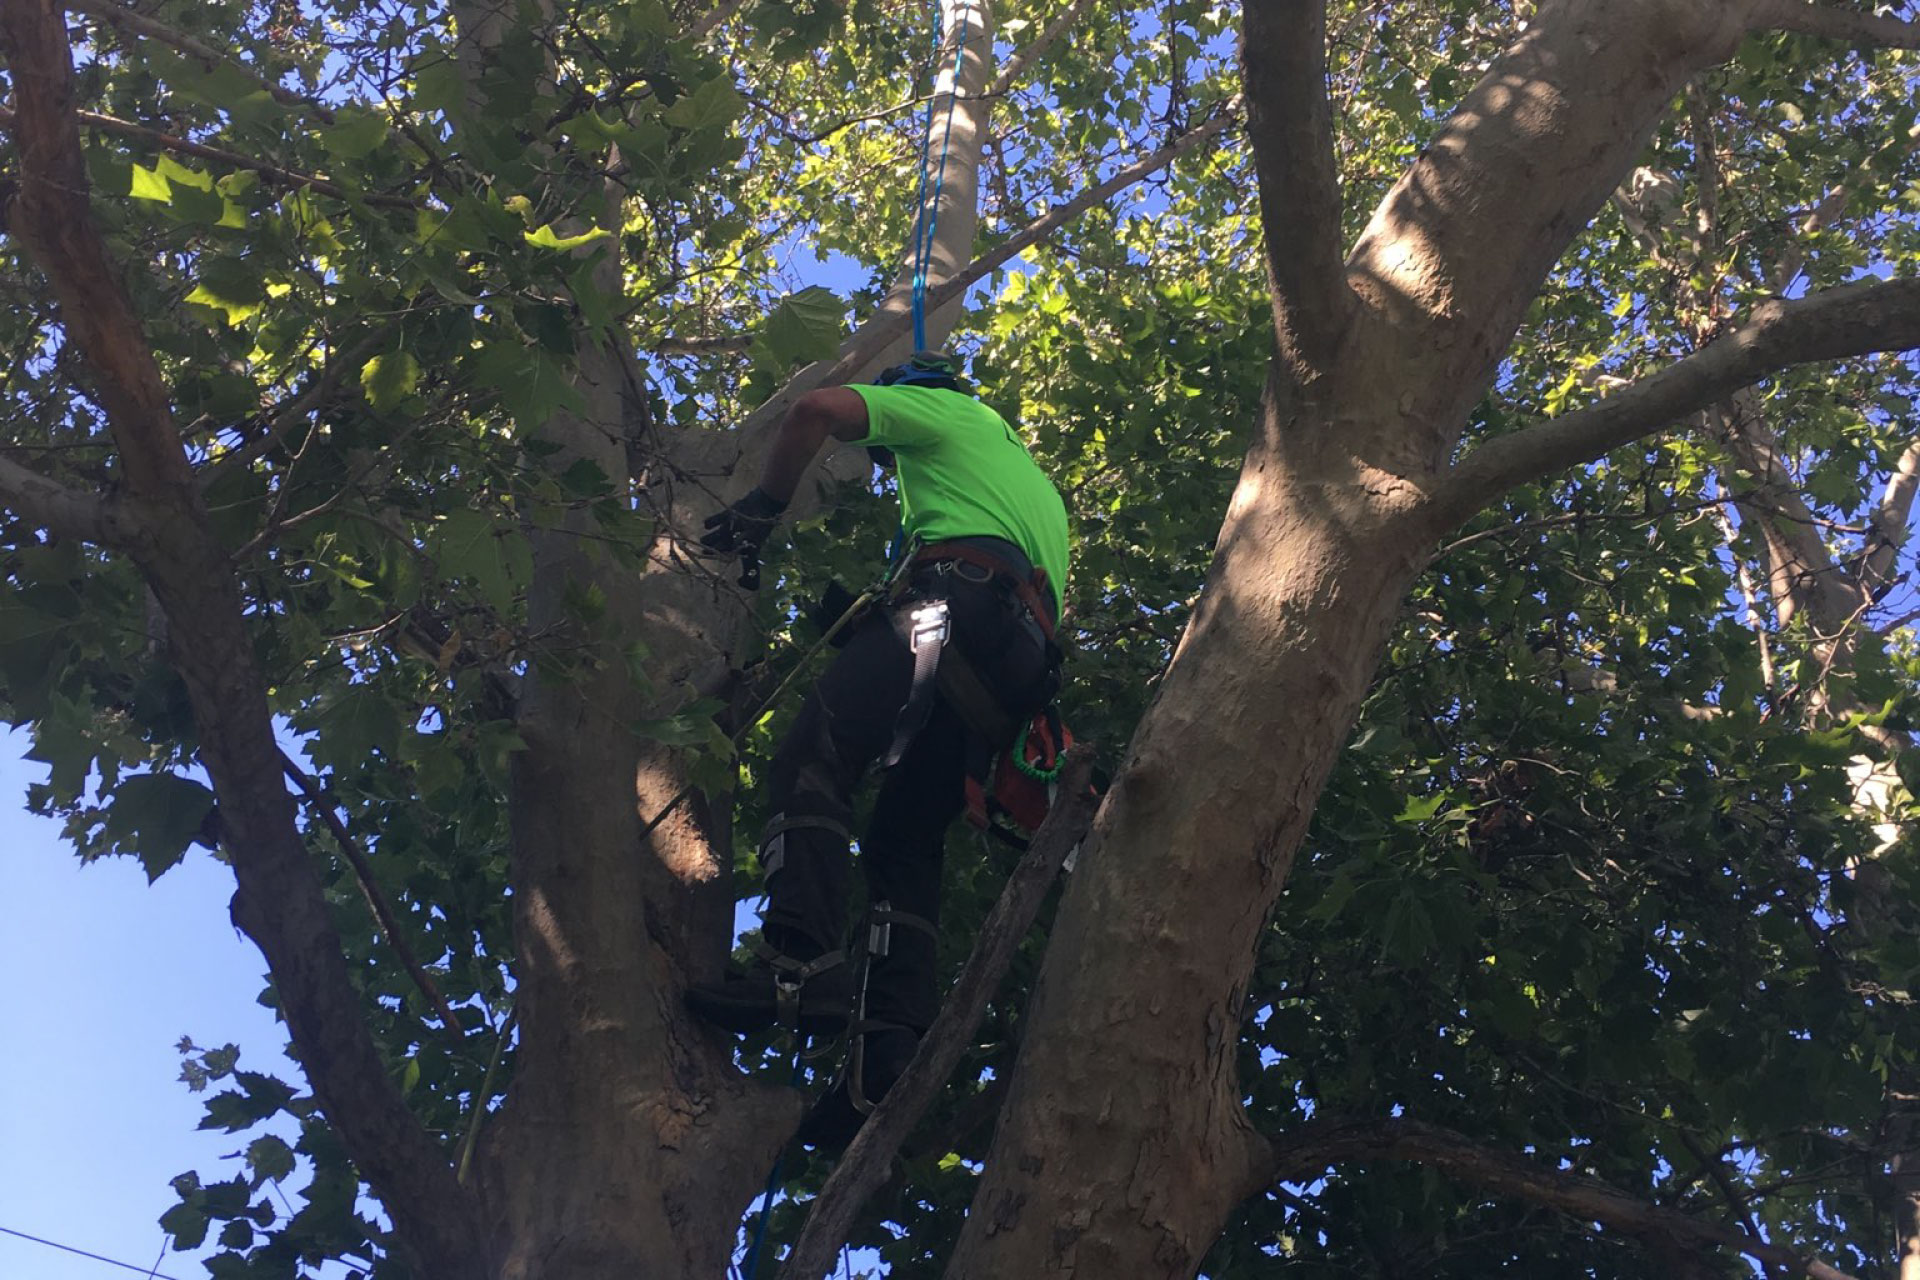 Premier Pruning and Trimming in Boise